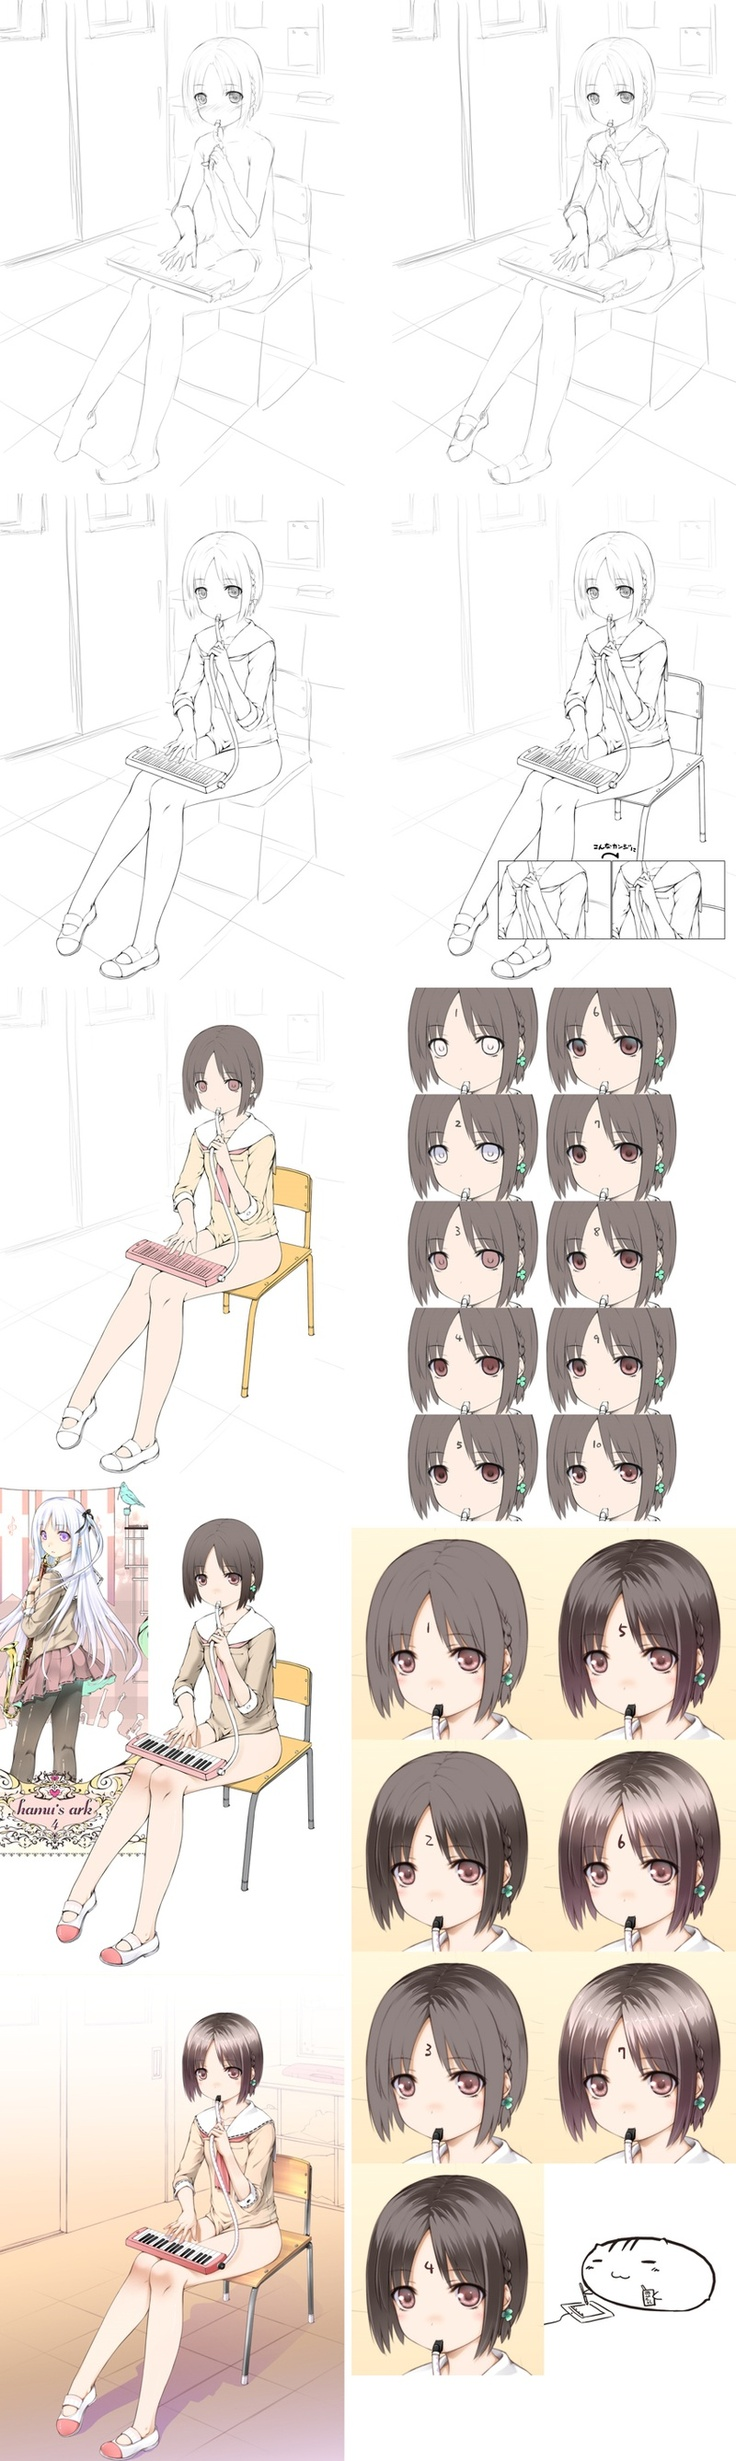 Cute Character Design Tutorial : Best images about illustration making on pinterest